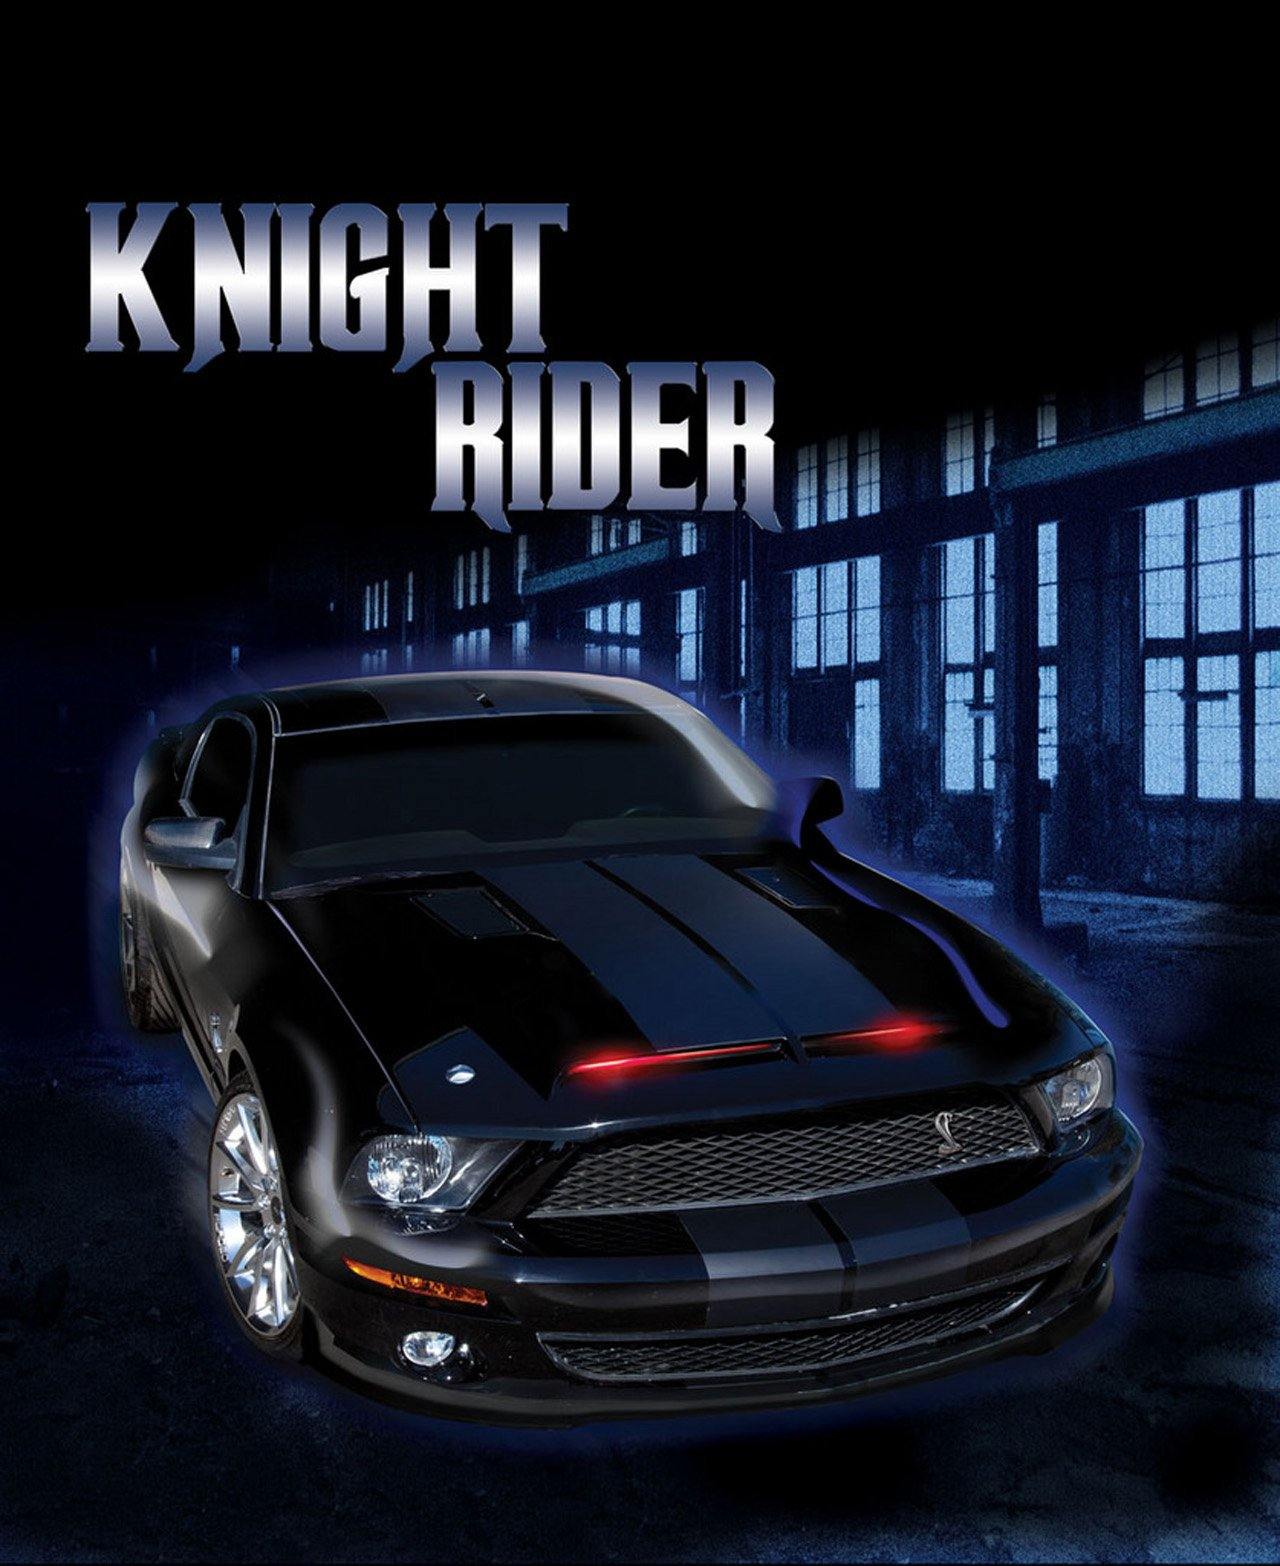 Highlander Vs 4Runner >> Knight Rider Ford Mustang K.I.T.T. Car Heading to the Auction Block » AutoGuide.com News